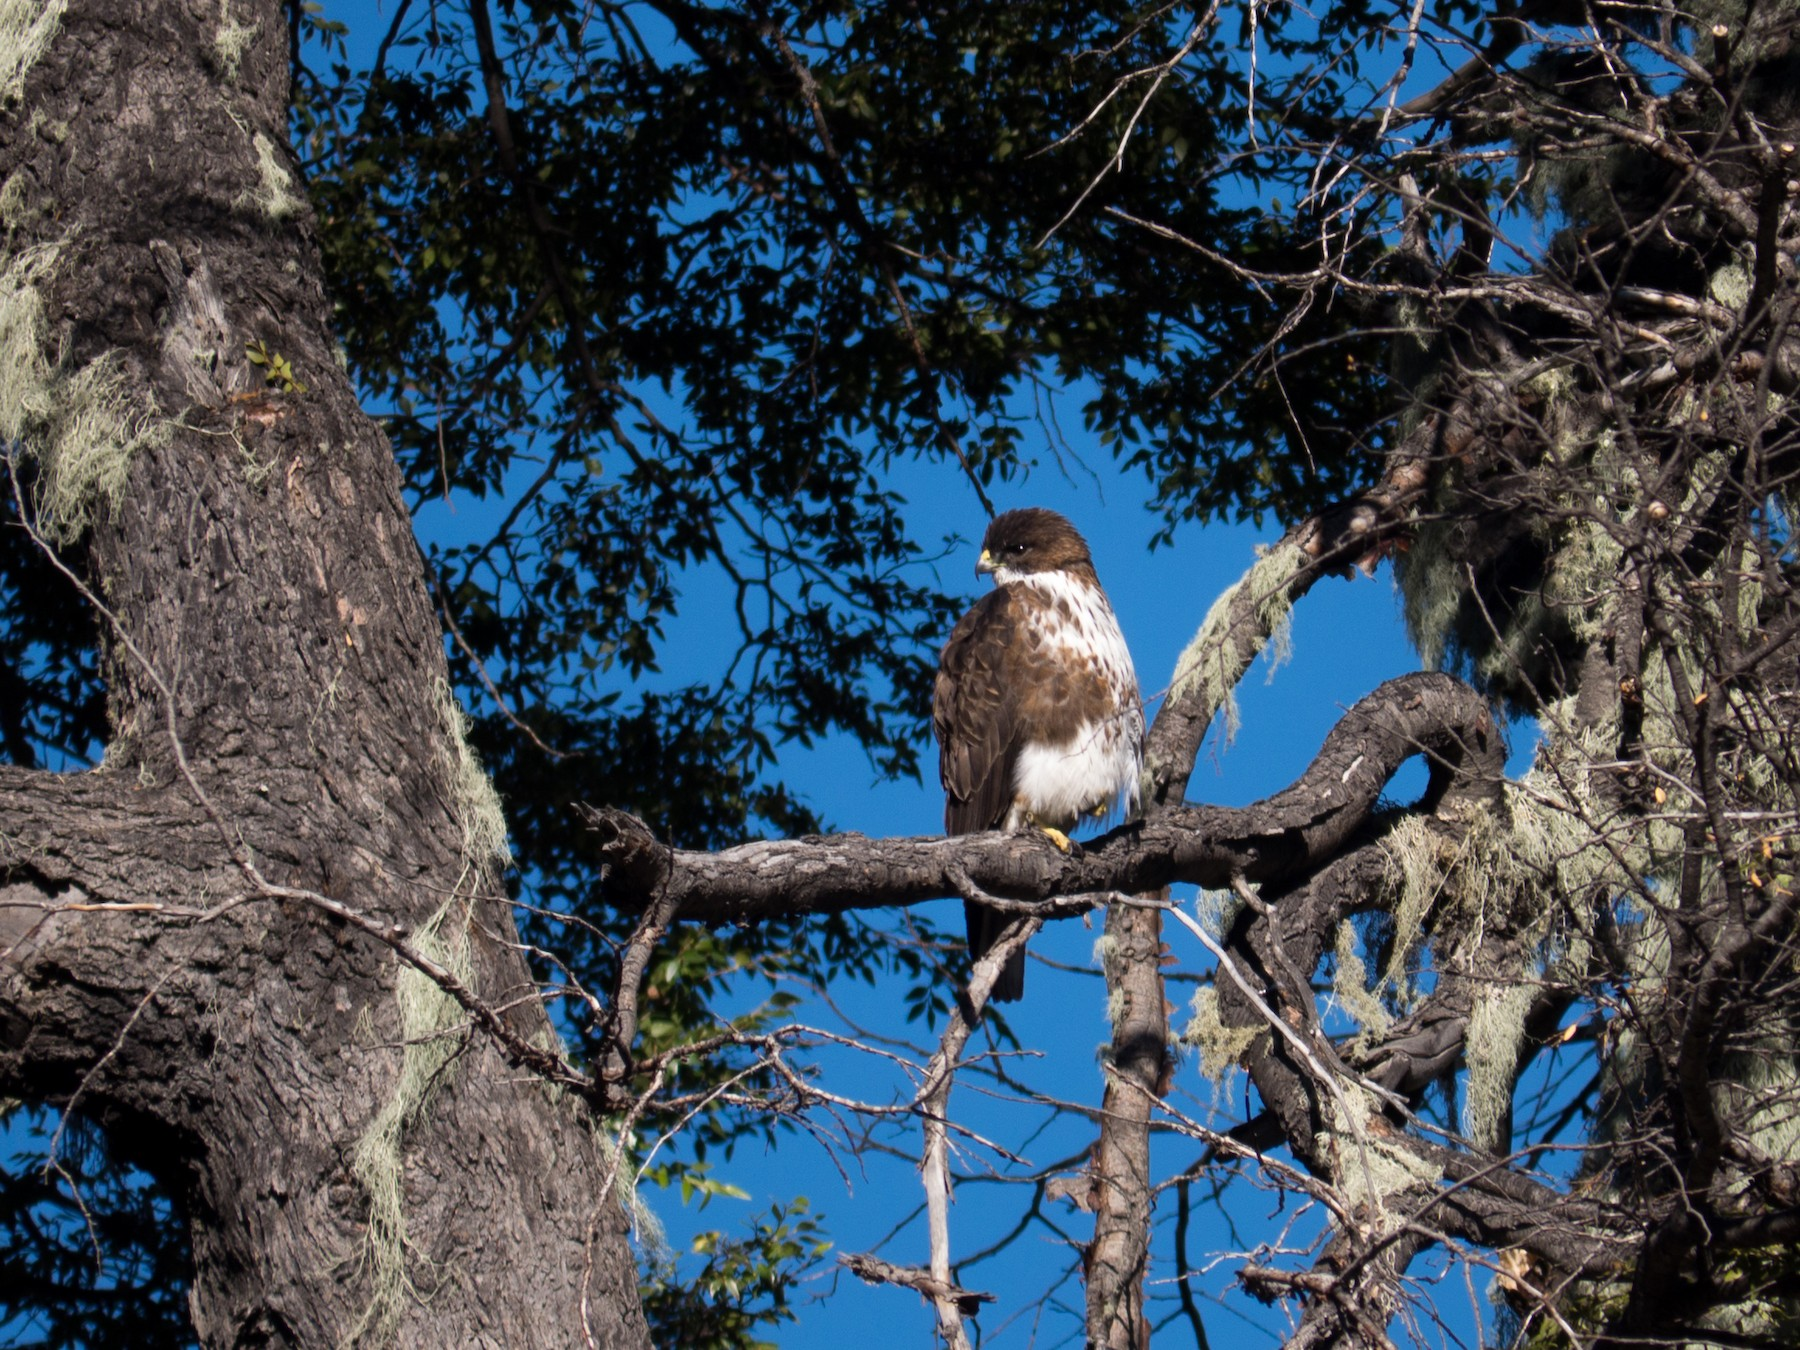 White-throated Hawk - Randall Siebert